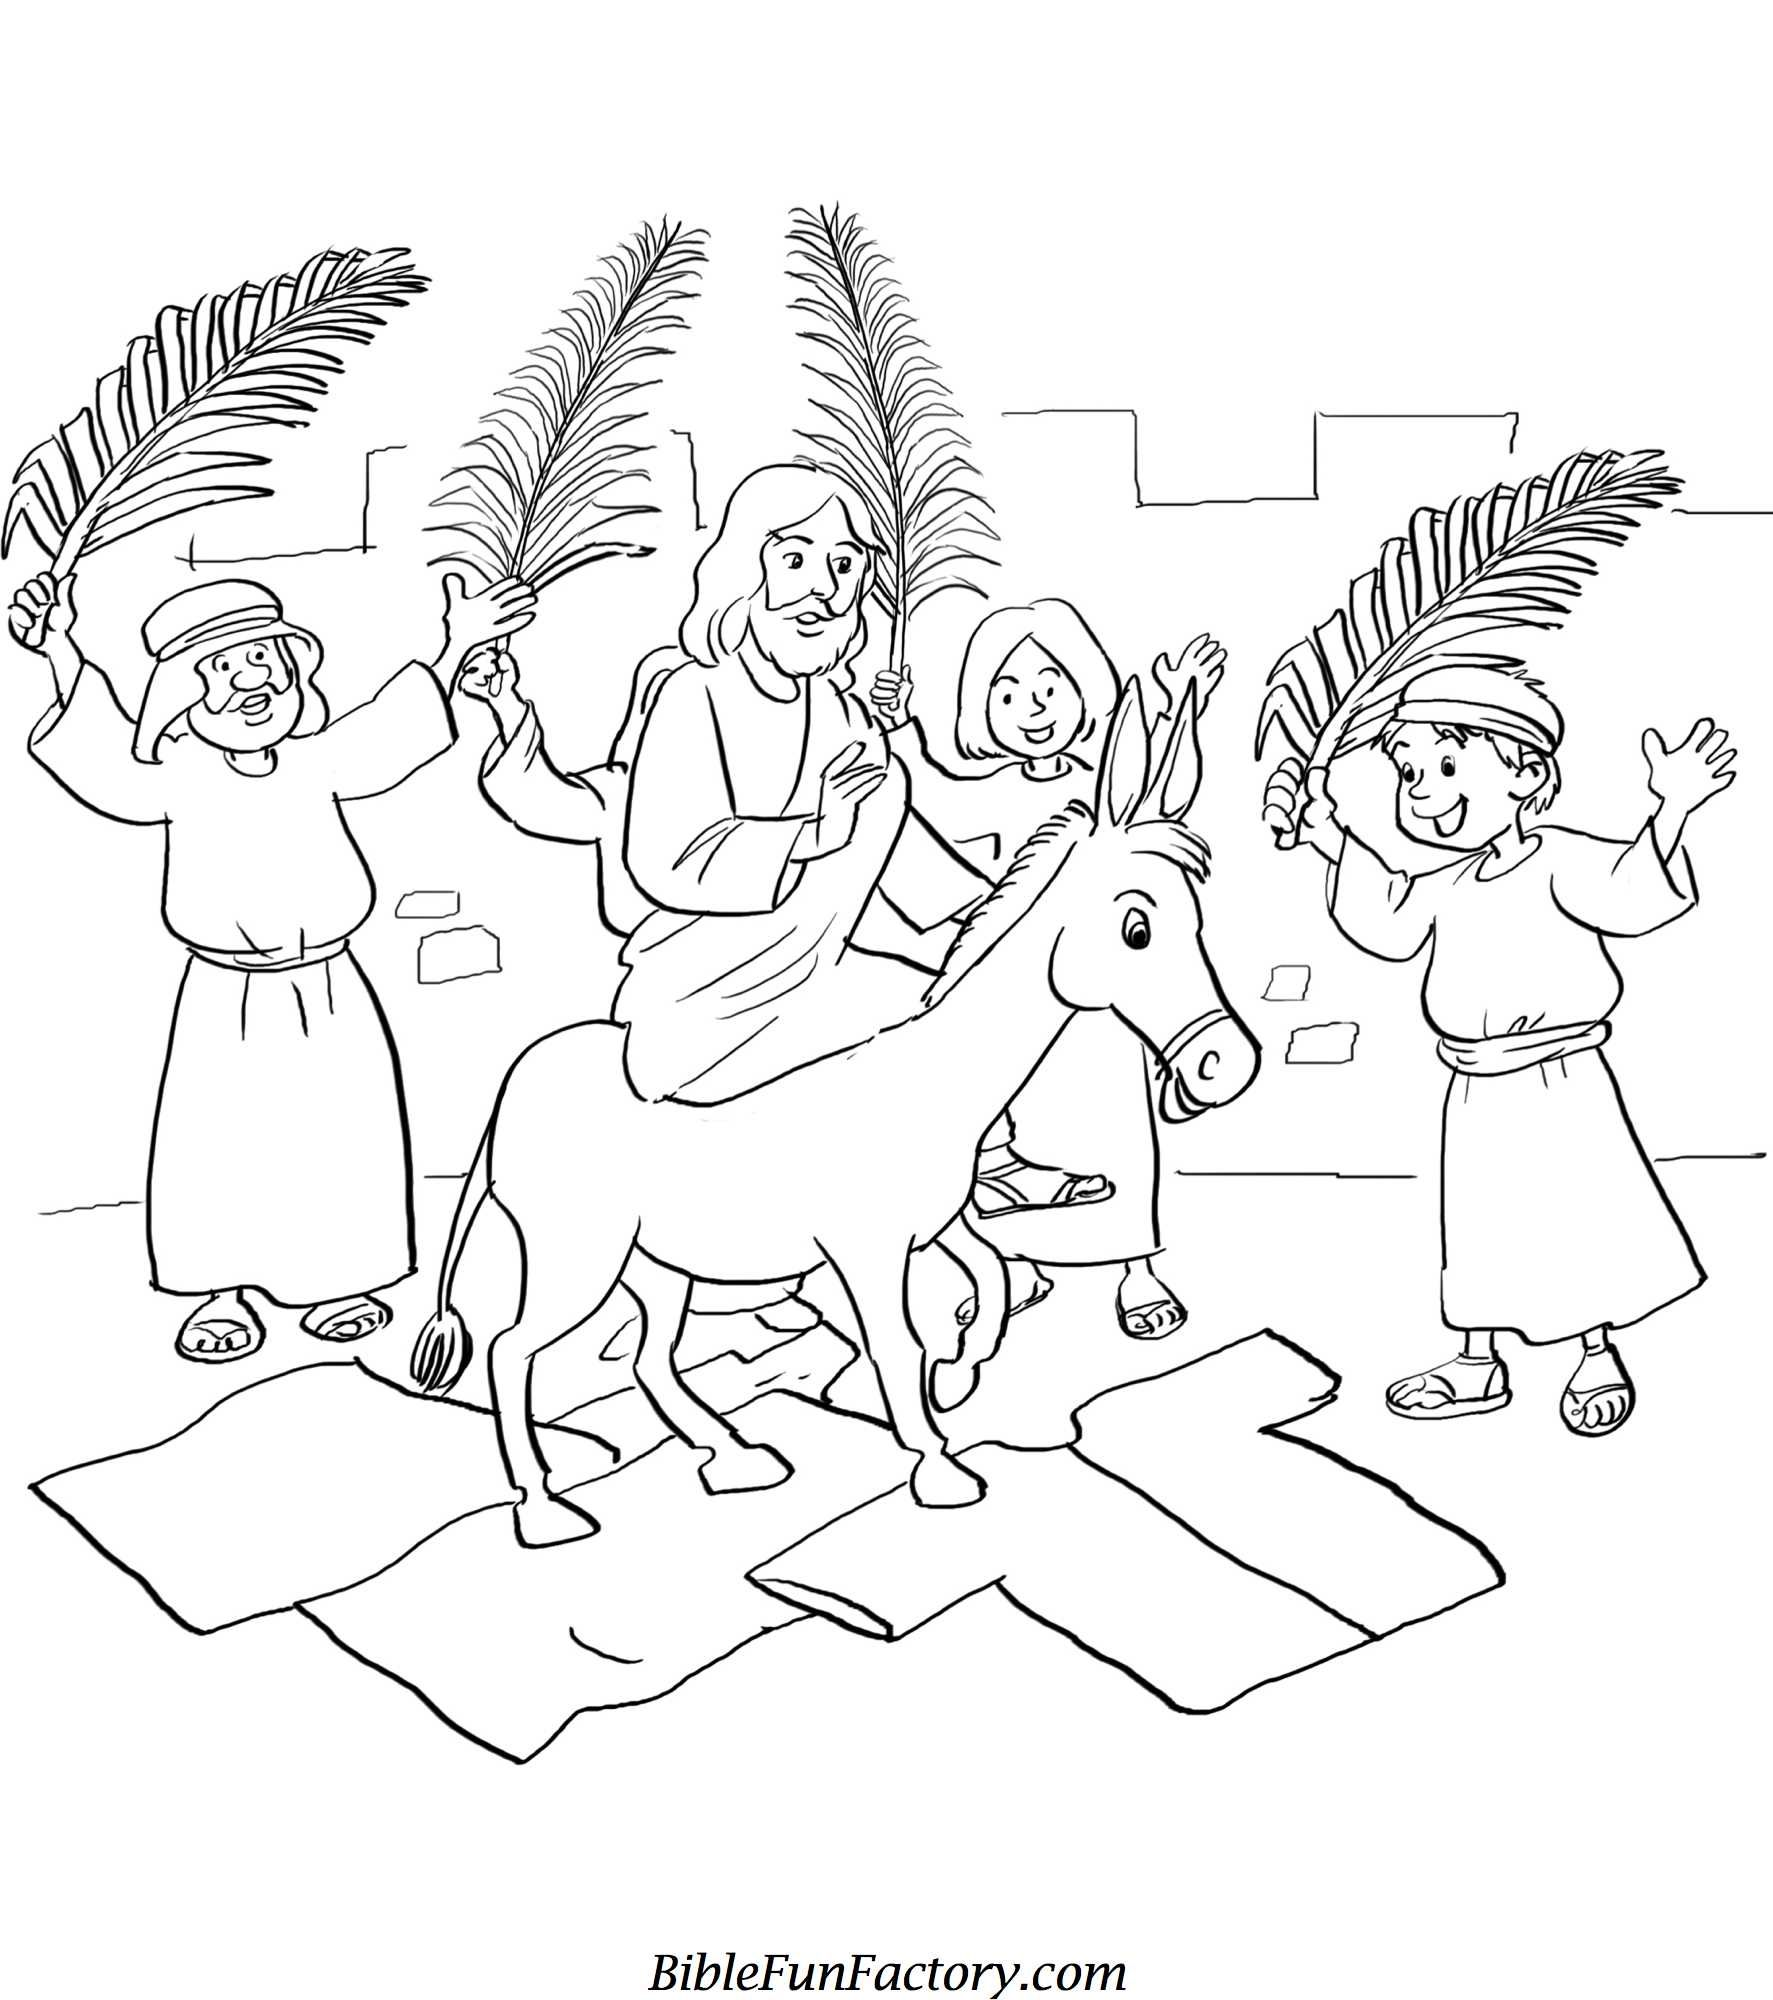 free palm sunday coloring sheets bible lessons games and activities biblefunfactory coloring pages Palm Sunday Coloring Page